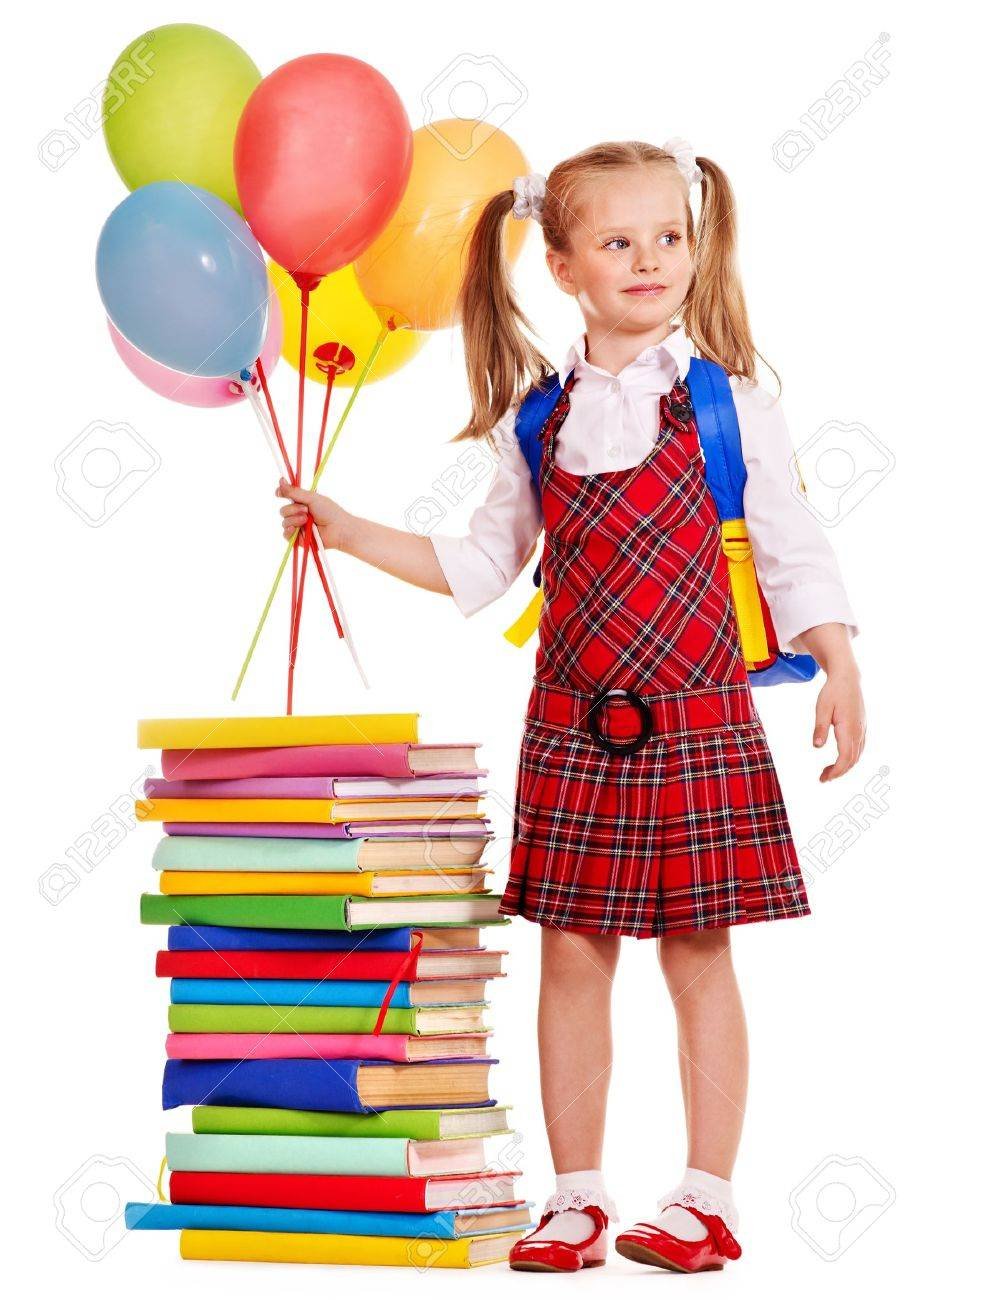 Child with book holding balloon. Isolated. Stock Photo - 14741208 8254baab52b53